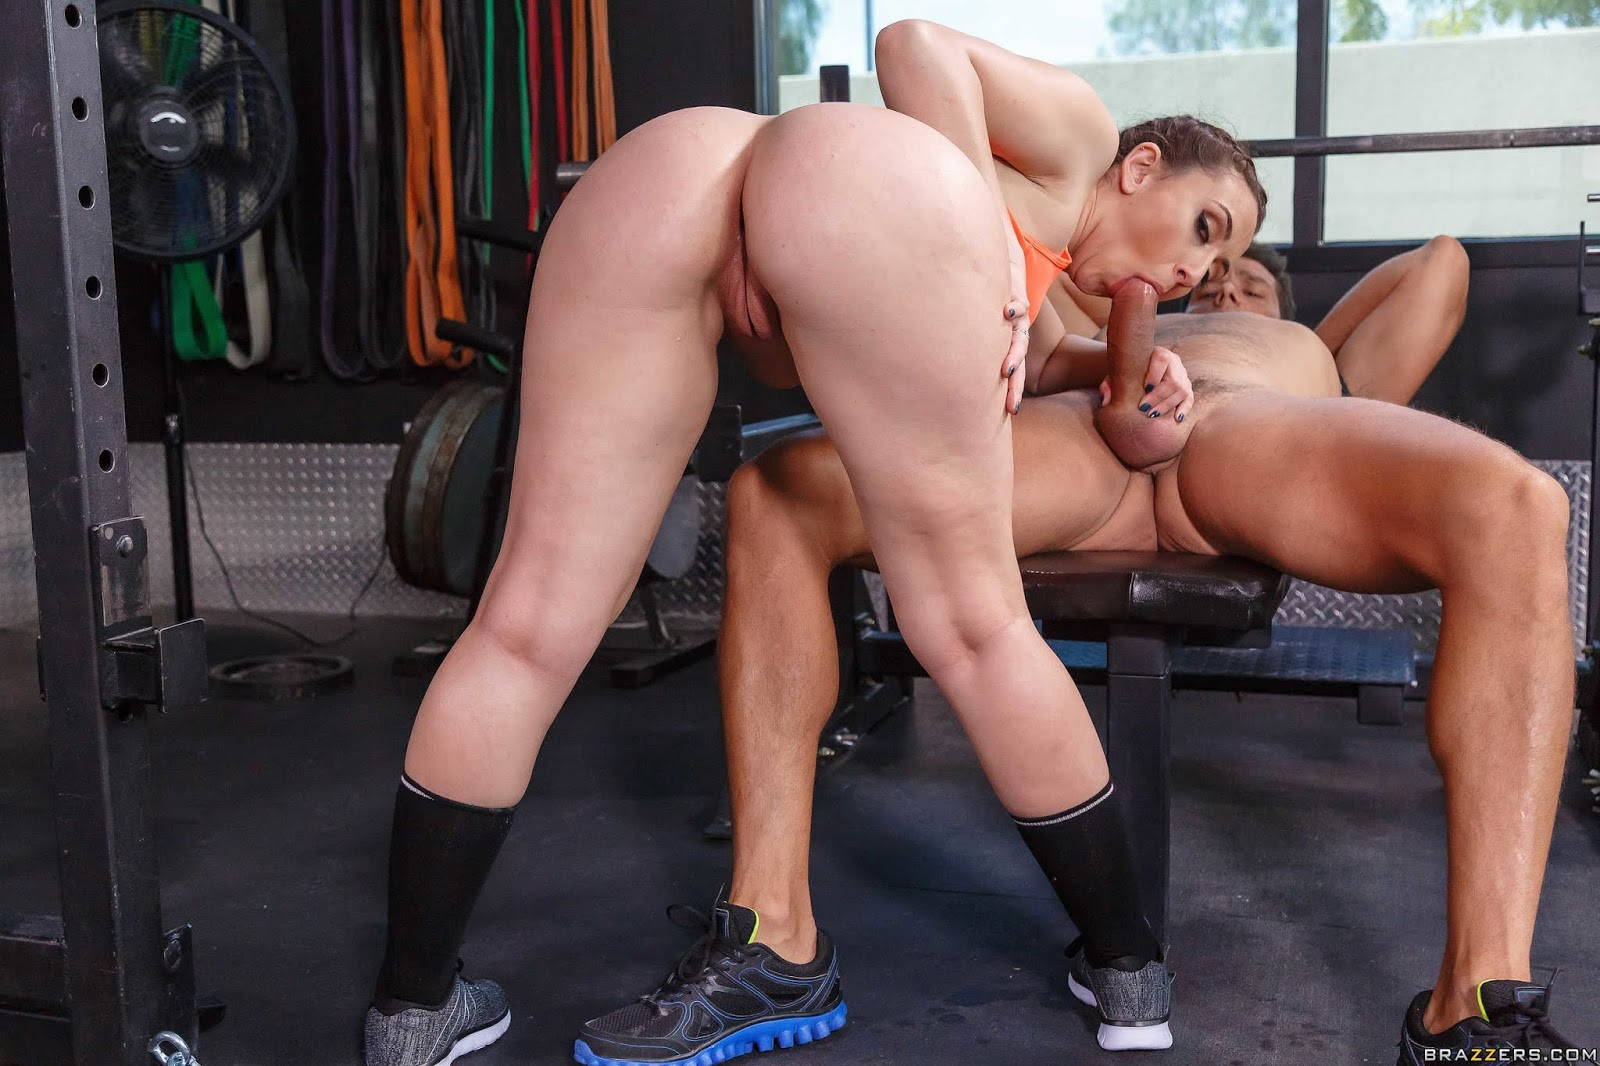 Fit ladies getting fucked video hayden